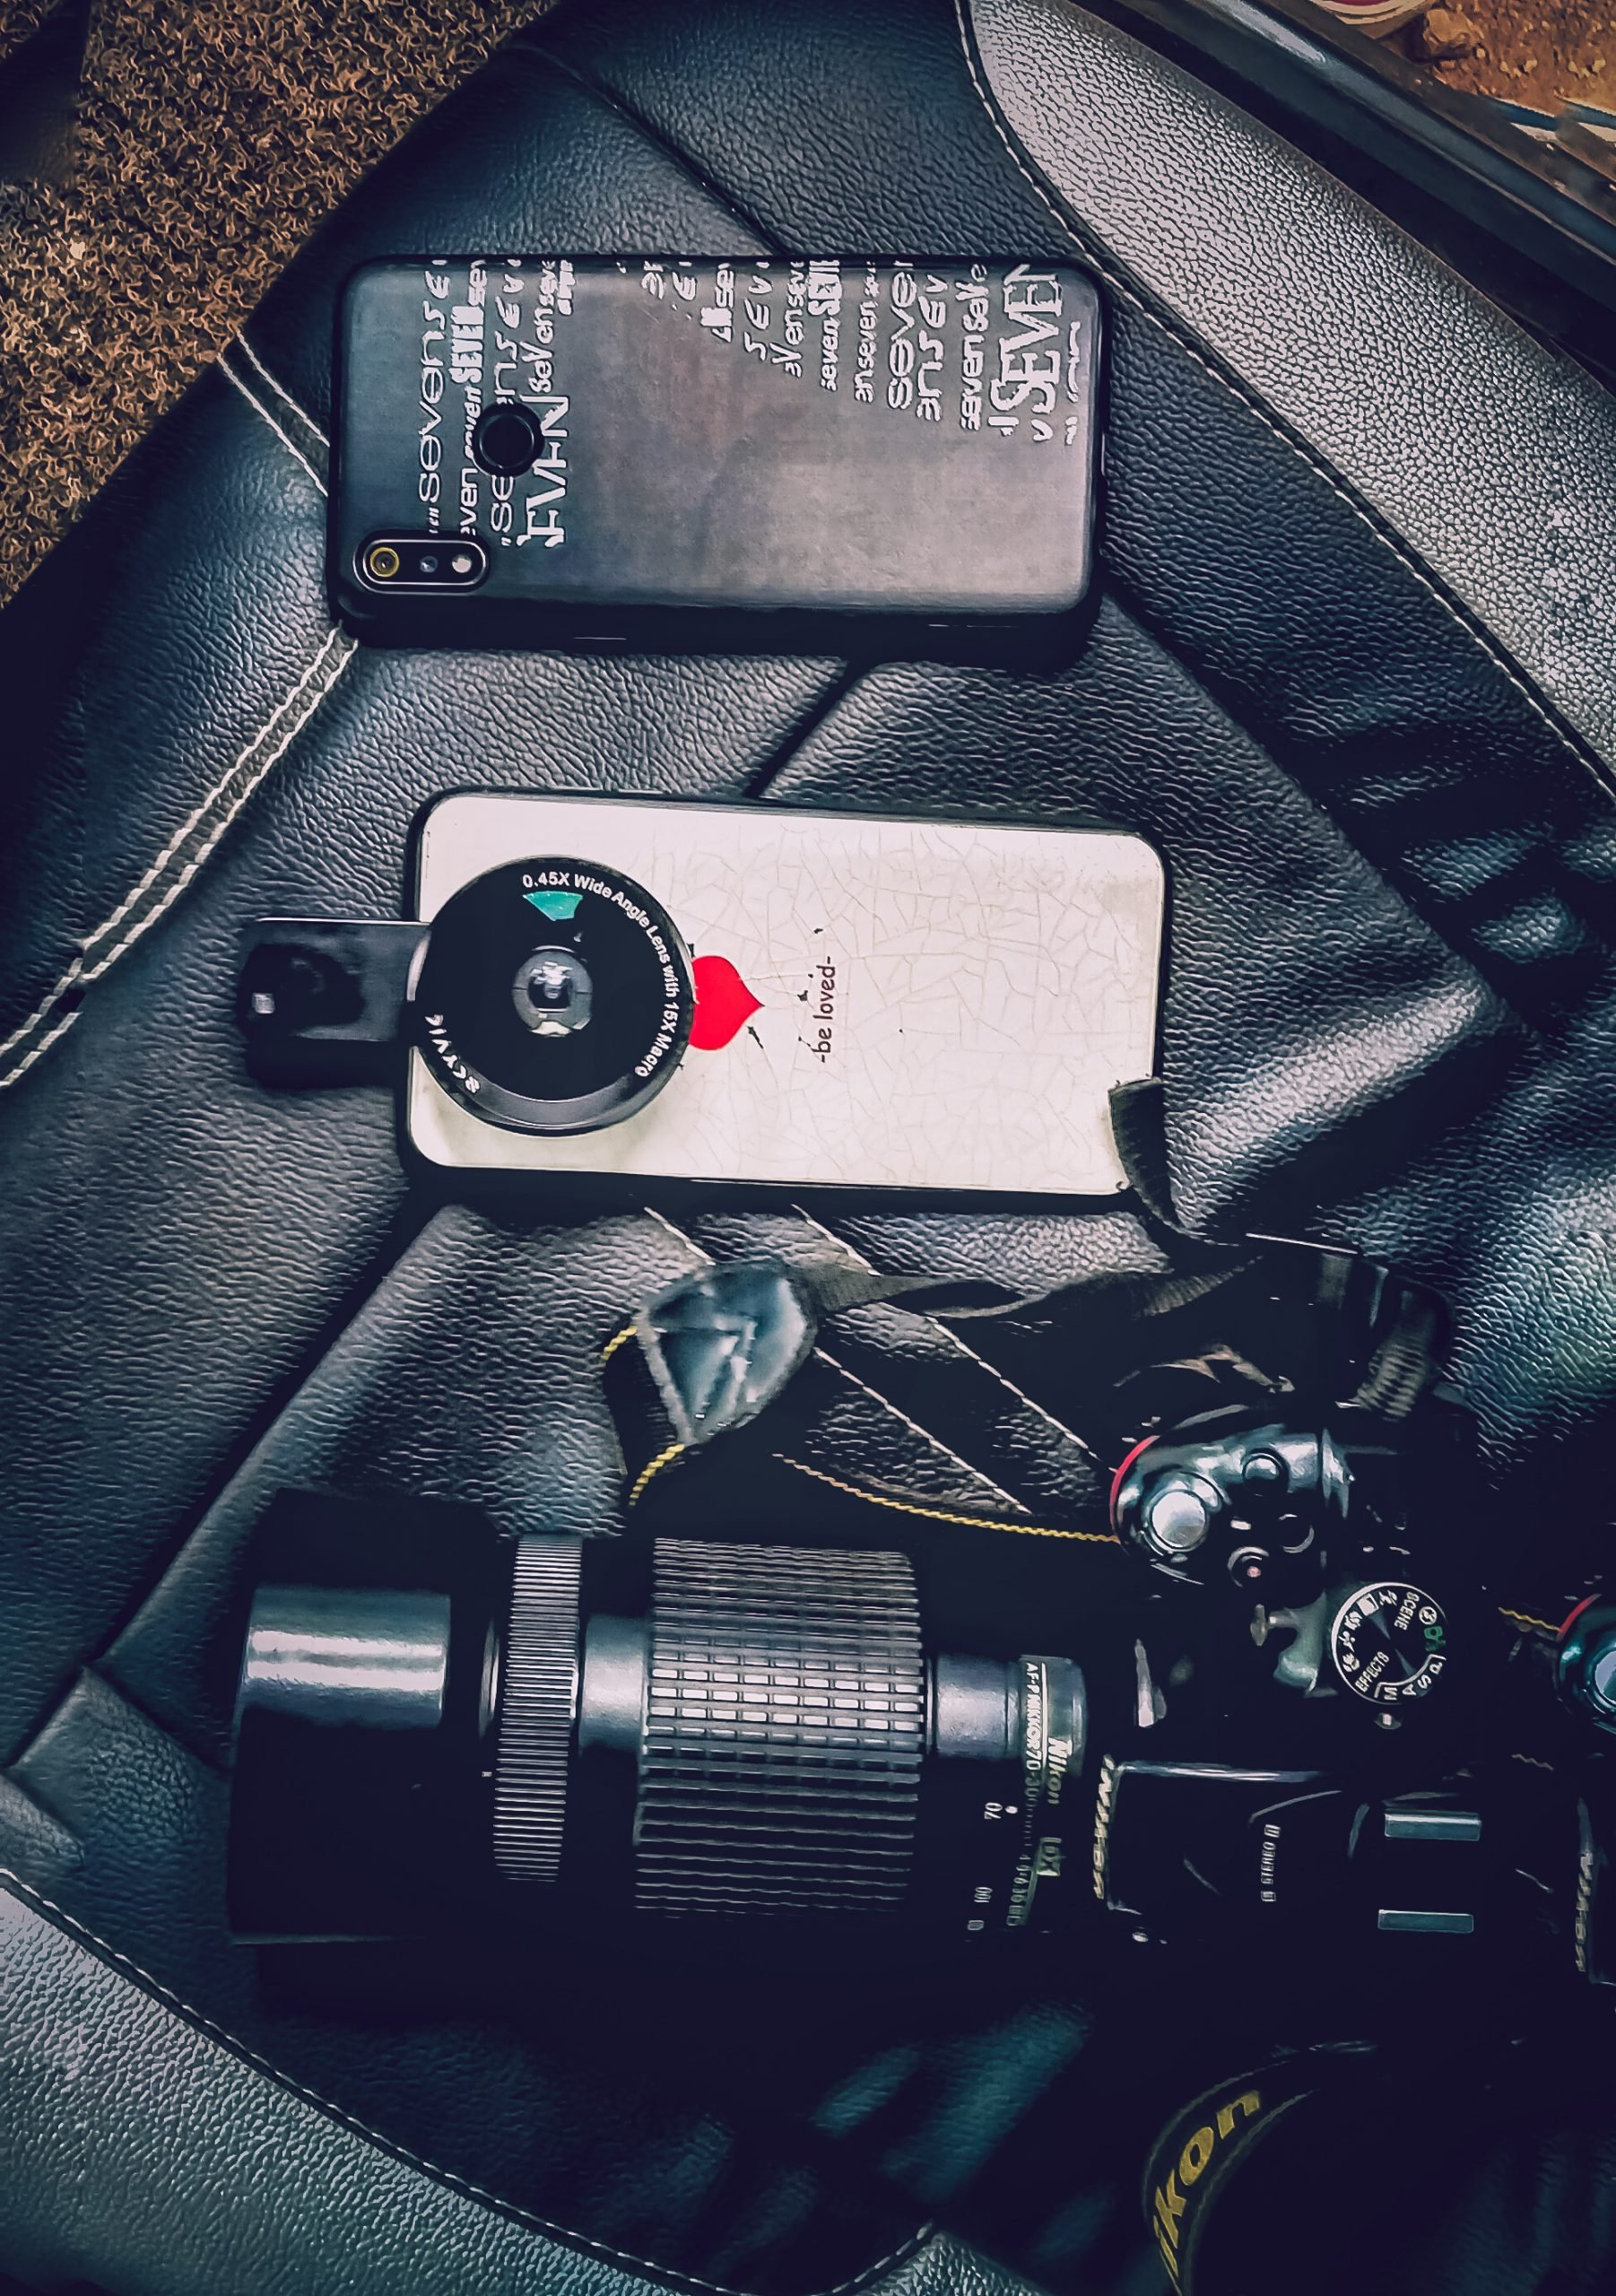 Mobile and camera